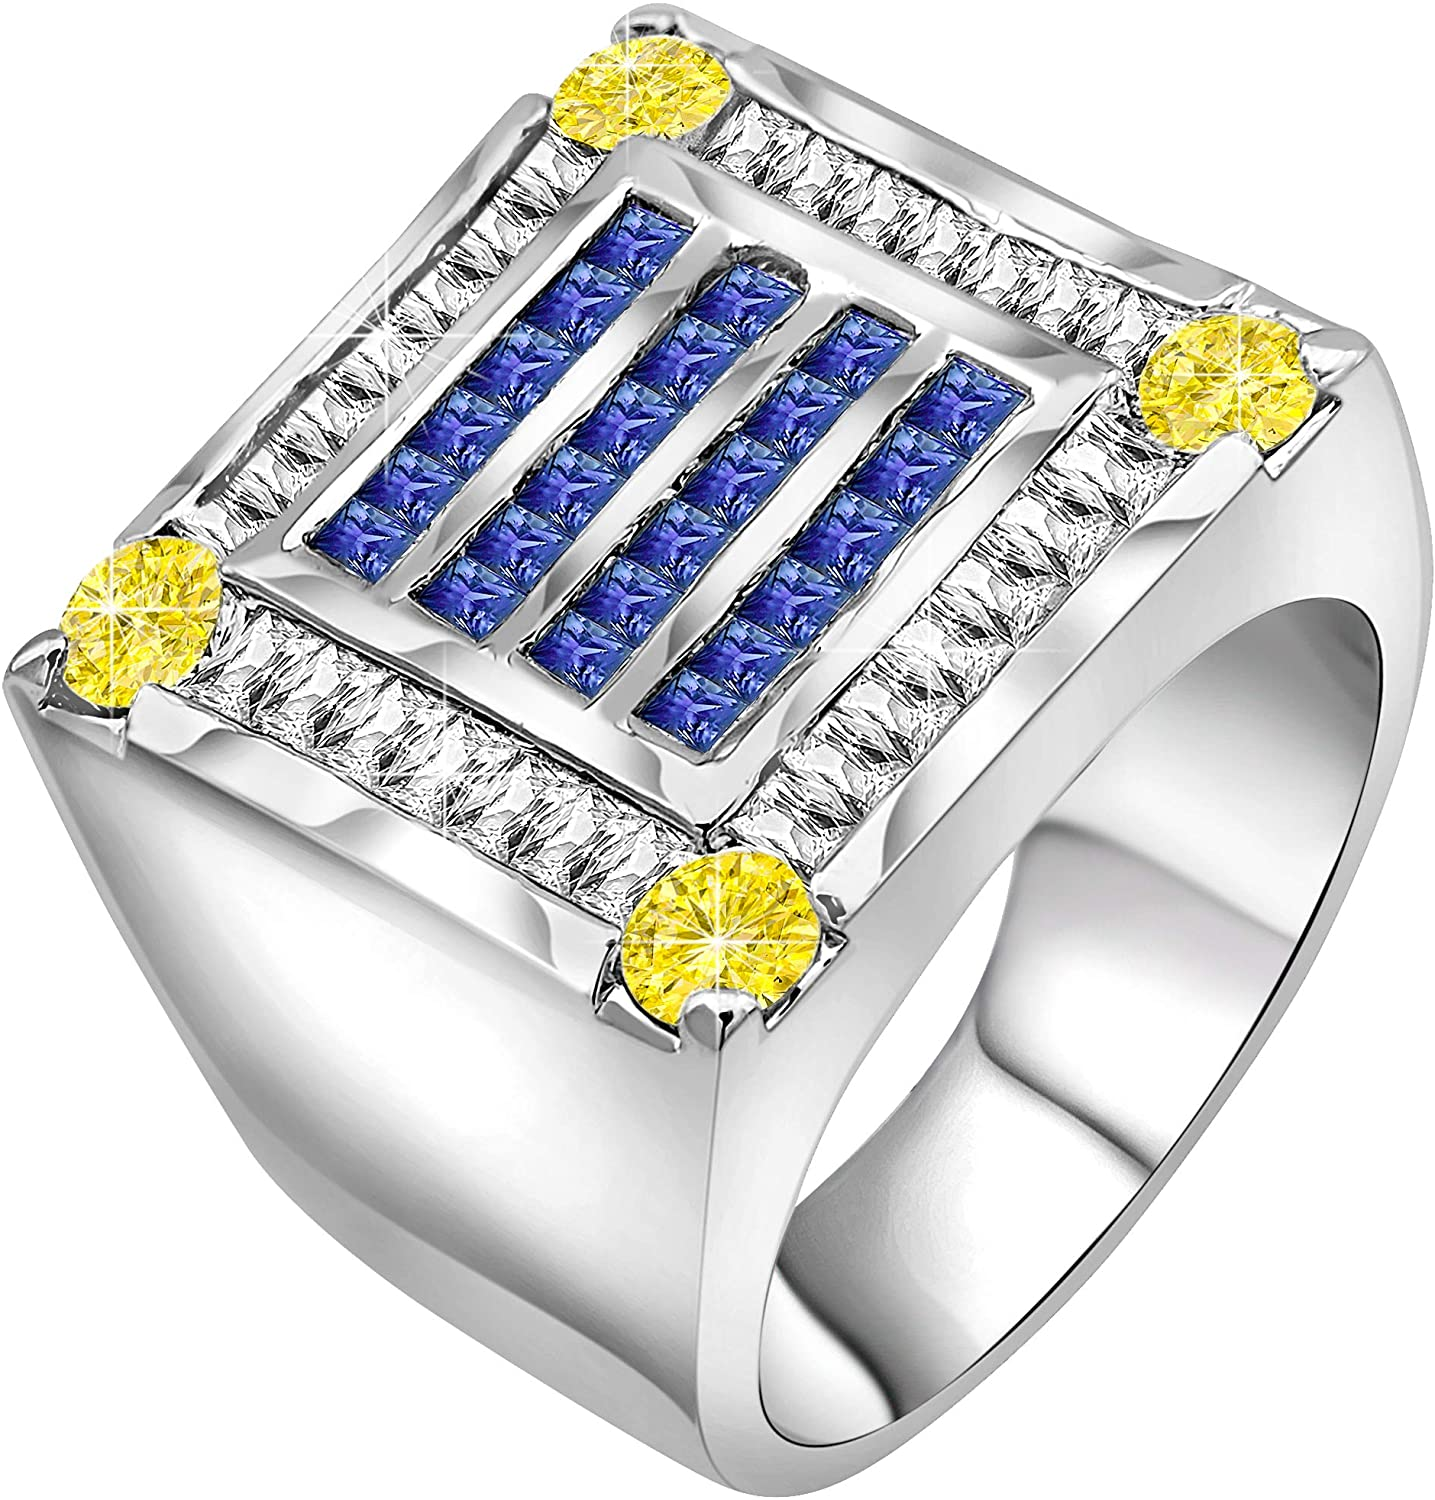 Men's Fancy Sterling Silver Ring Jewelry Set with Canary Yellow & Azure Blue Cubic Zirconia or CZ 56 Stones Elegant Design of .925 Different Size for Your Finger